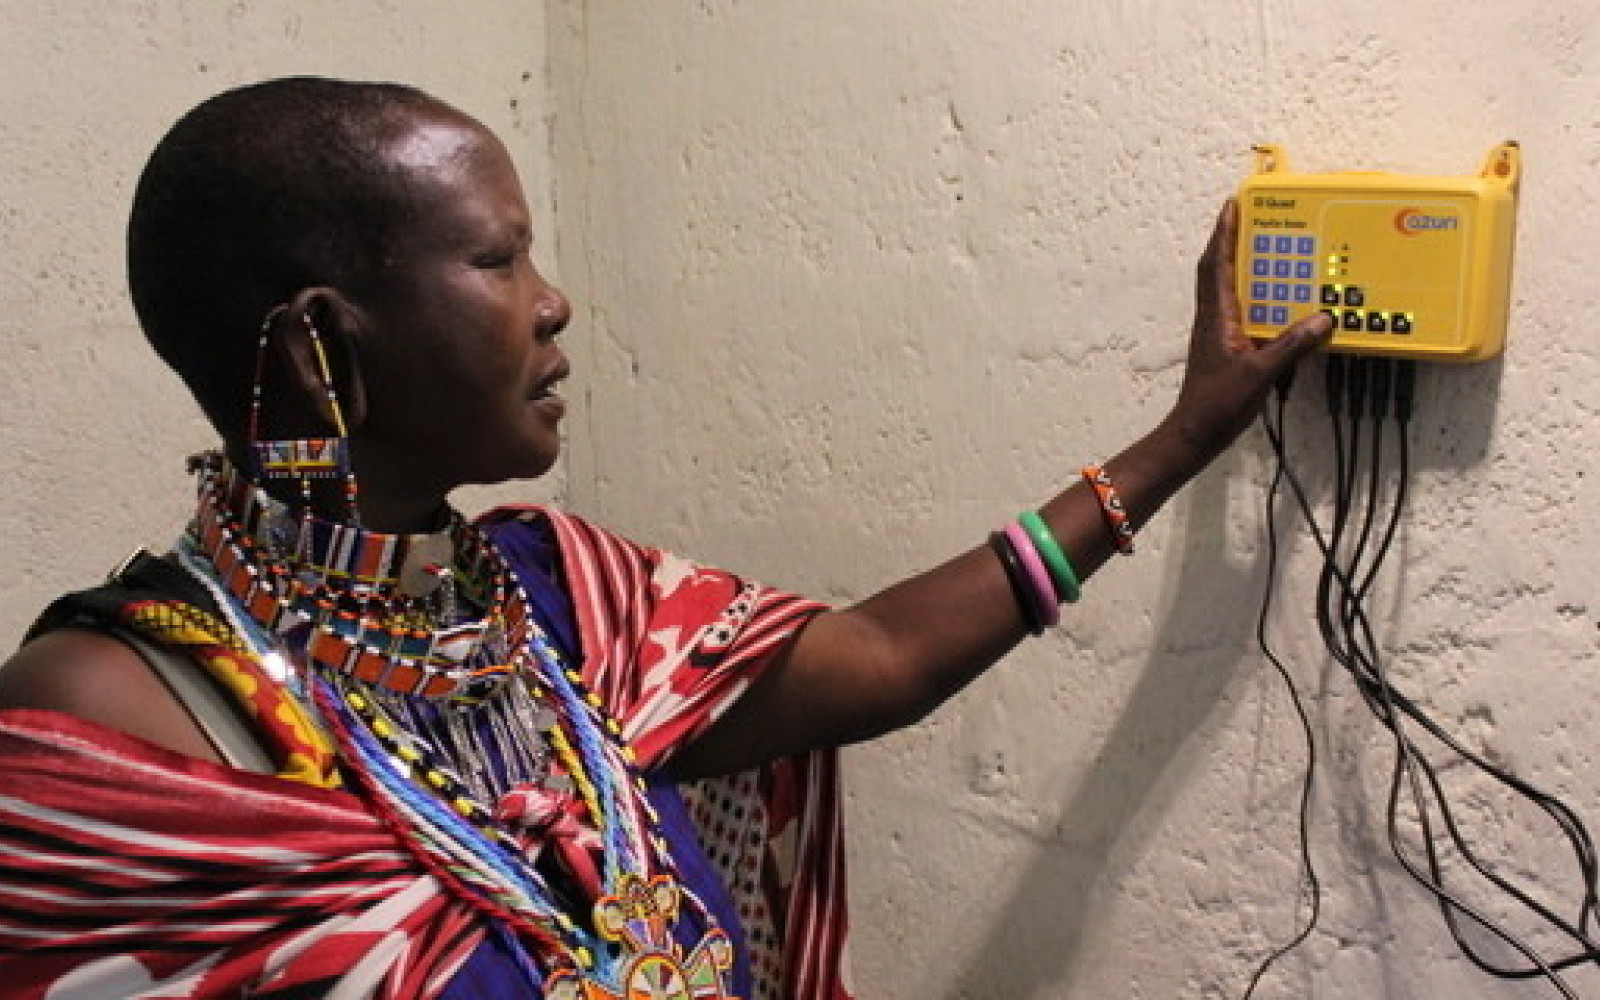 Pay-As-You-Go Solar Lanterns are a Gateway Product